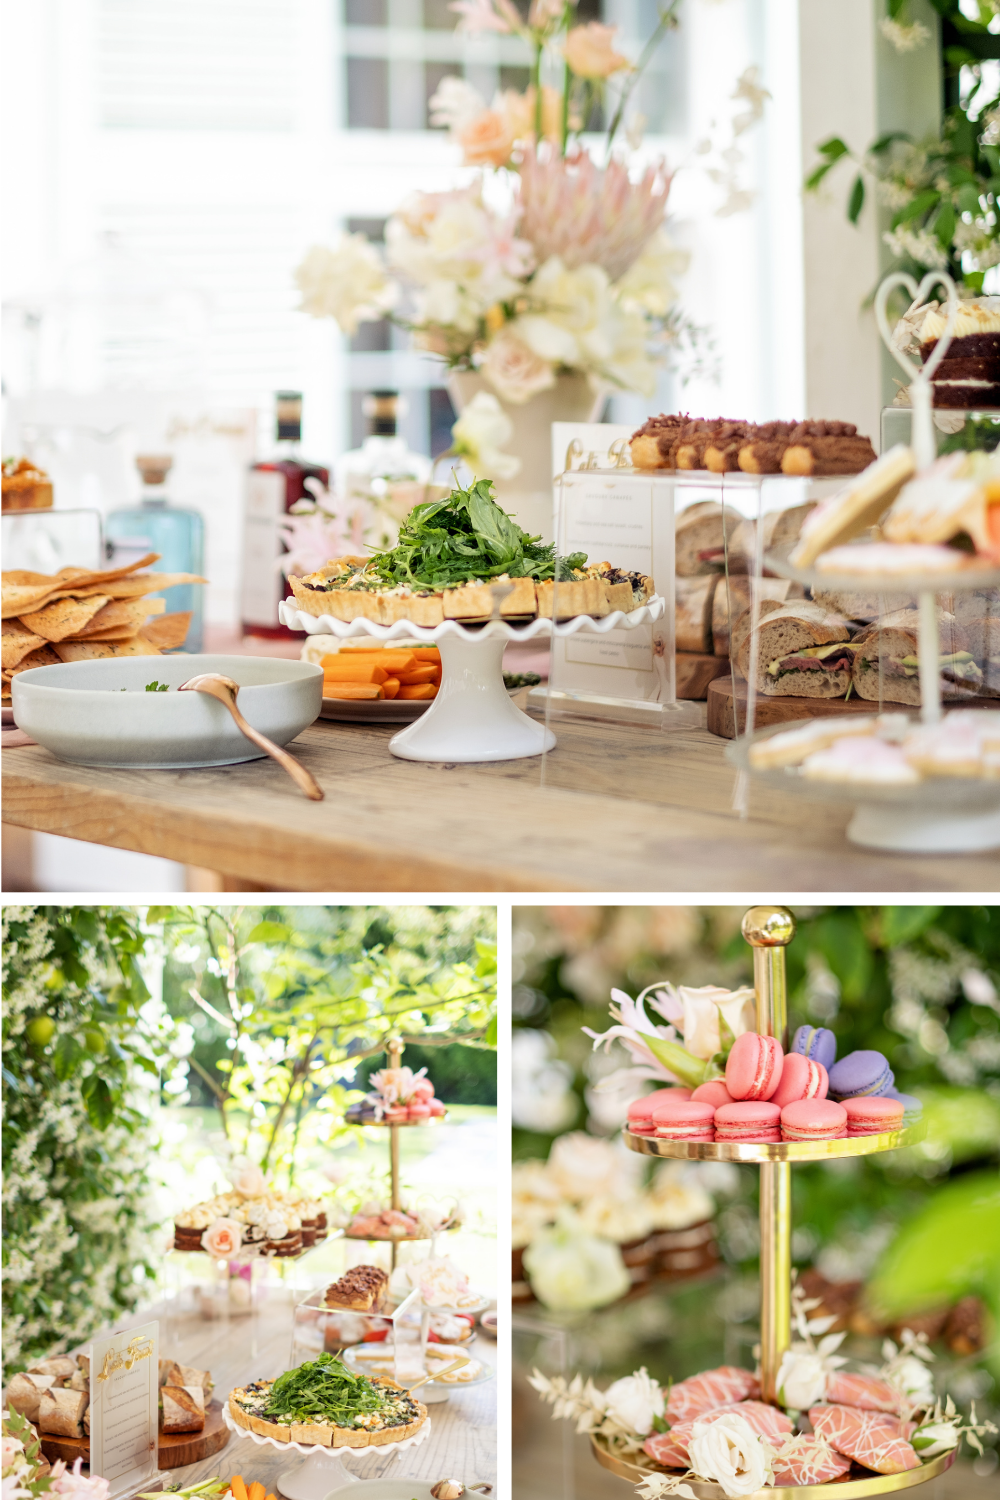 Outdoor table set up with cakes and sweet treats